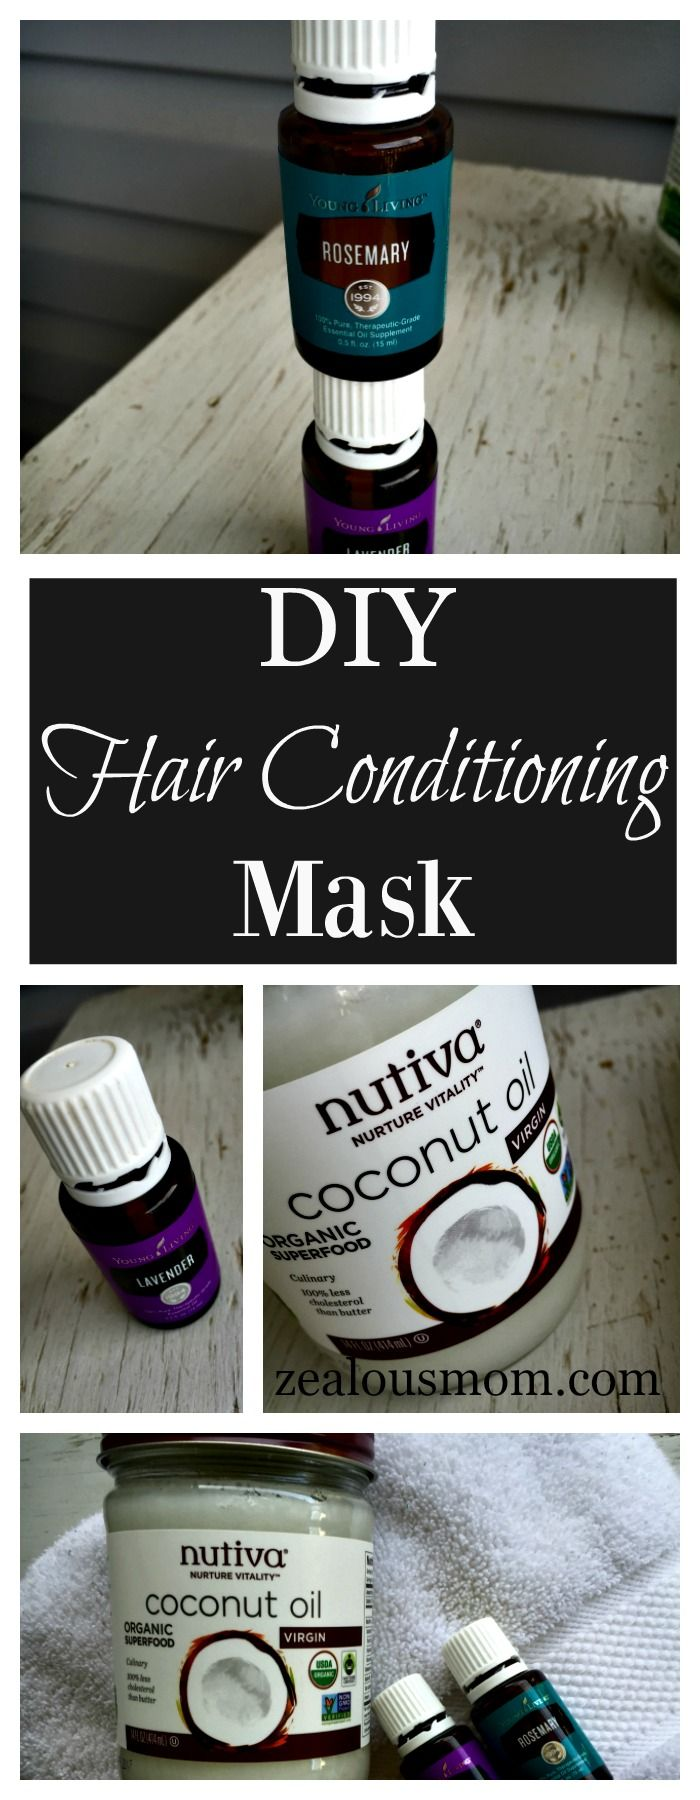 An amazing DIY hair conditioning mask that combines the nourishment of coconut o...